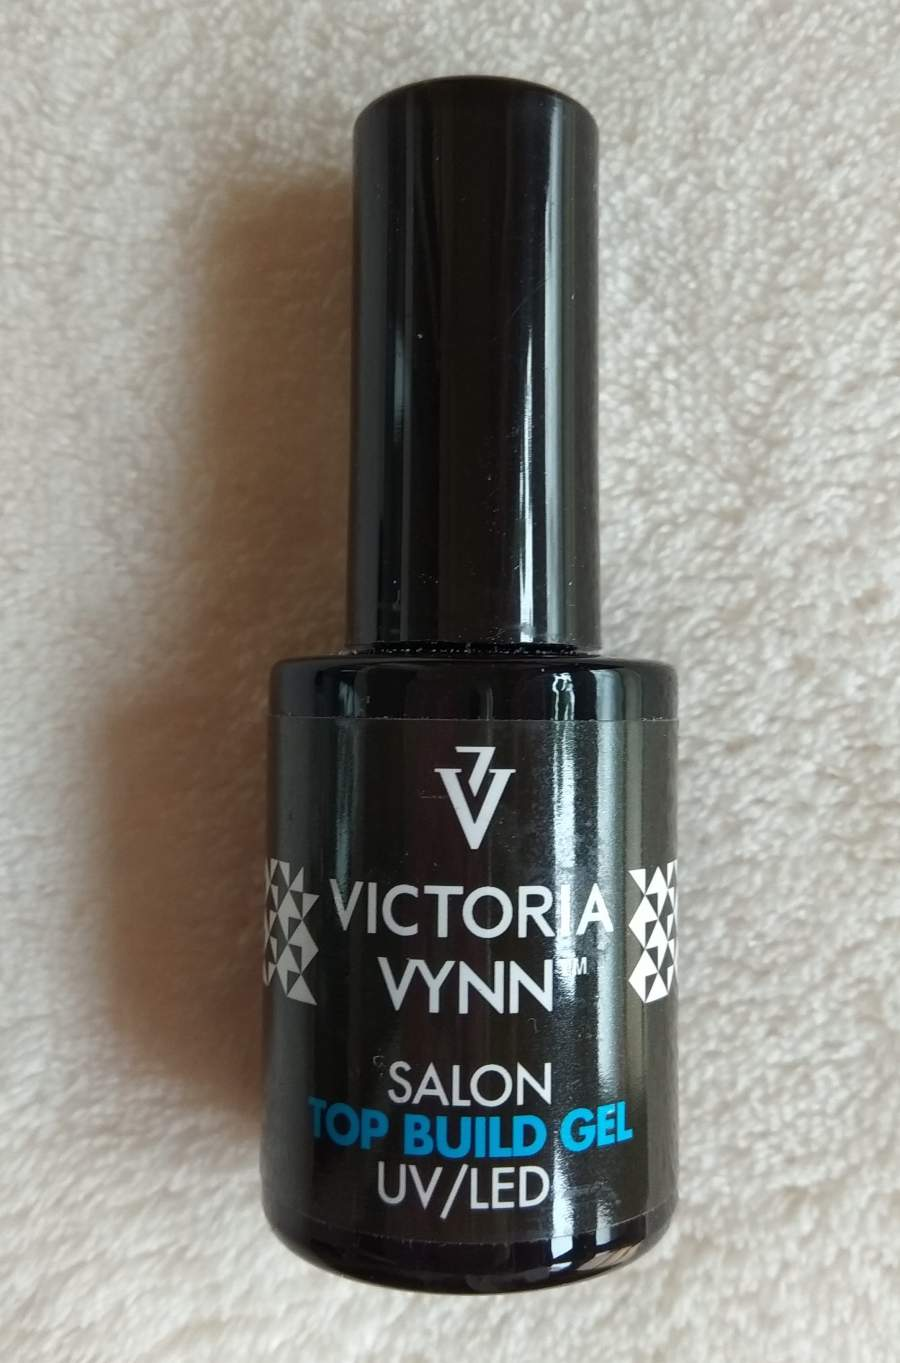 Victoria Vynn - Top Build Gel - 15 ml